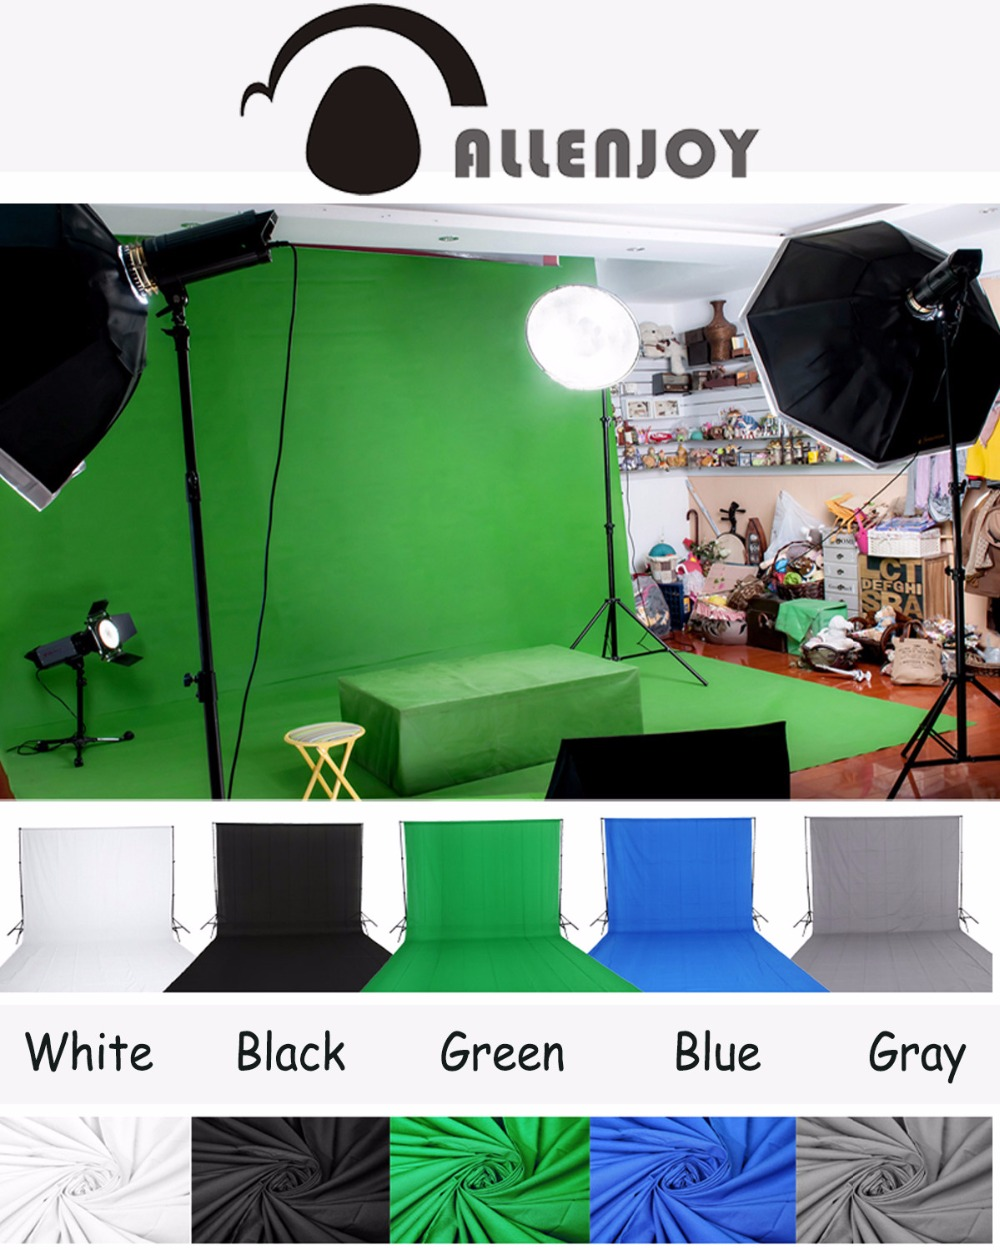 Allenjoy Green screen background chroma key more color Options Customized Size Professional Photo Lighting Studio supon 6 color options screen chroma key 3 x 5m background backdrop cloth for studio photo lighting non woven fabrics backdrop